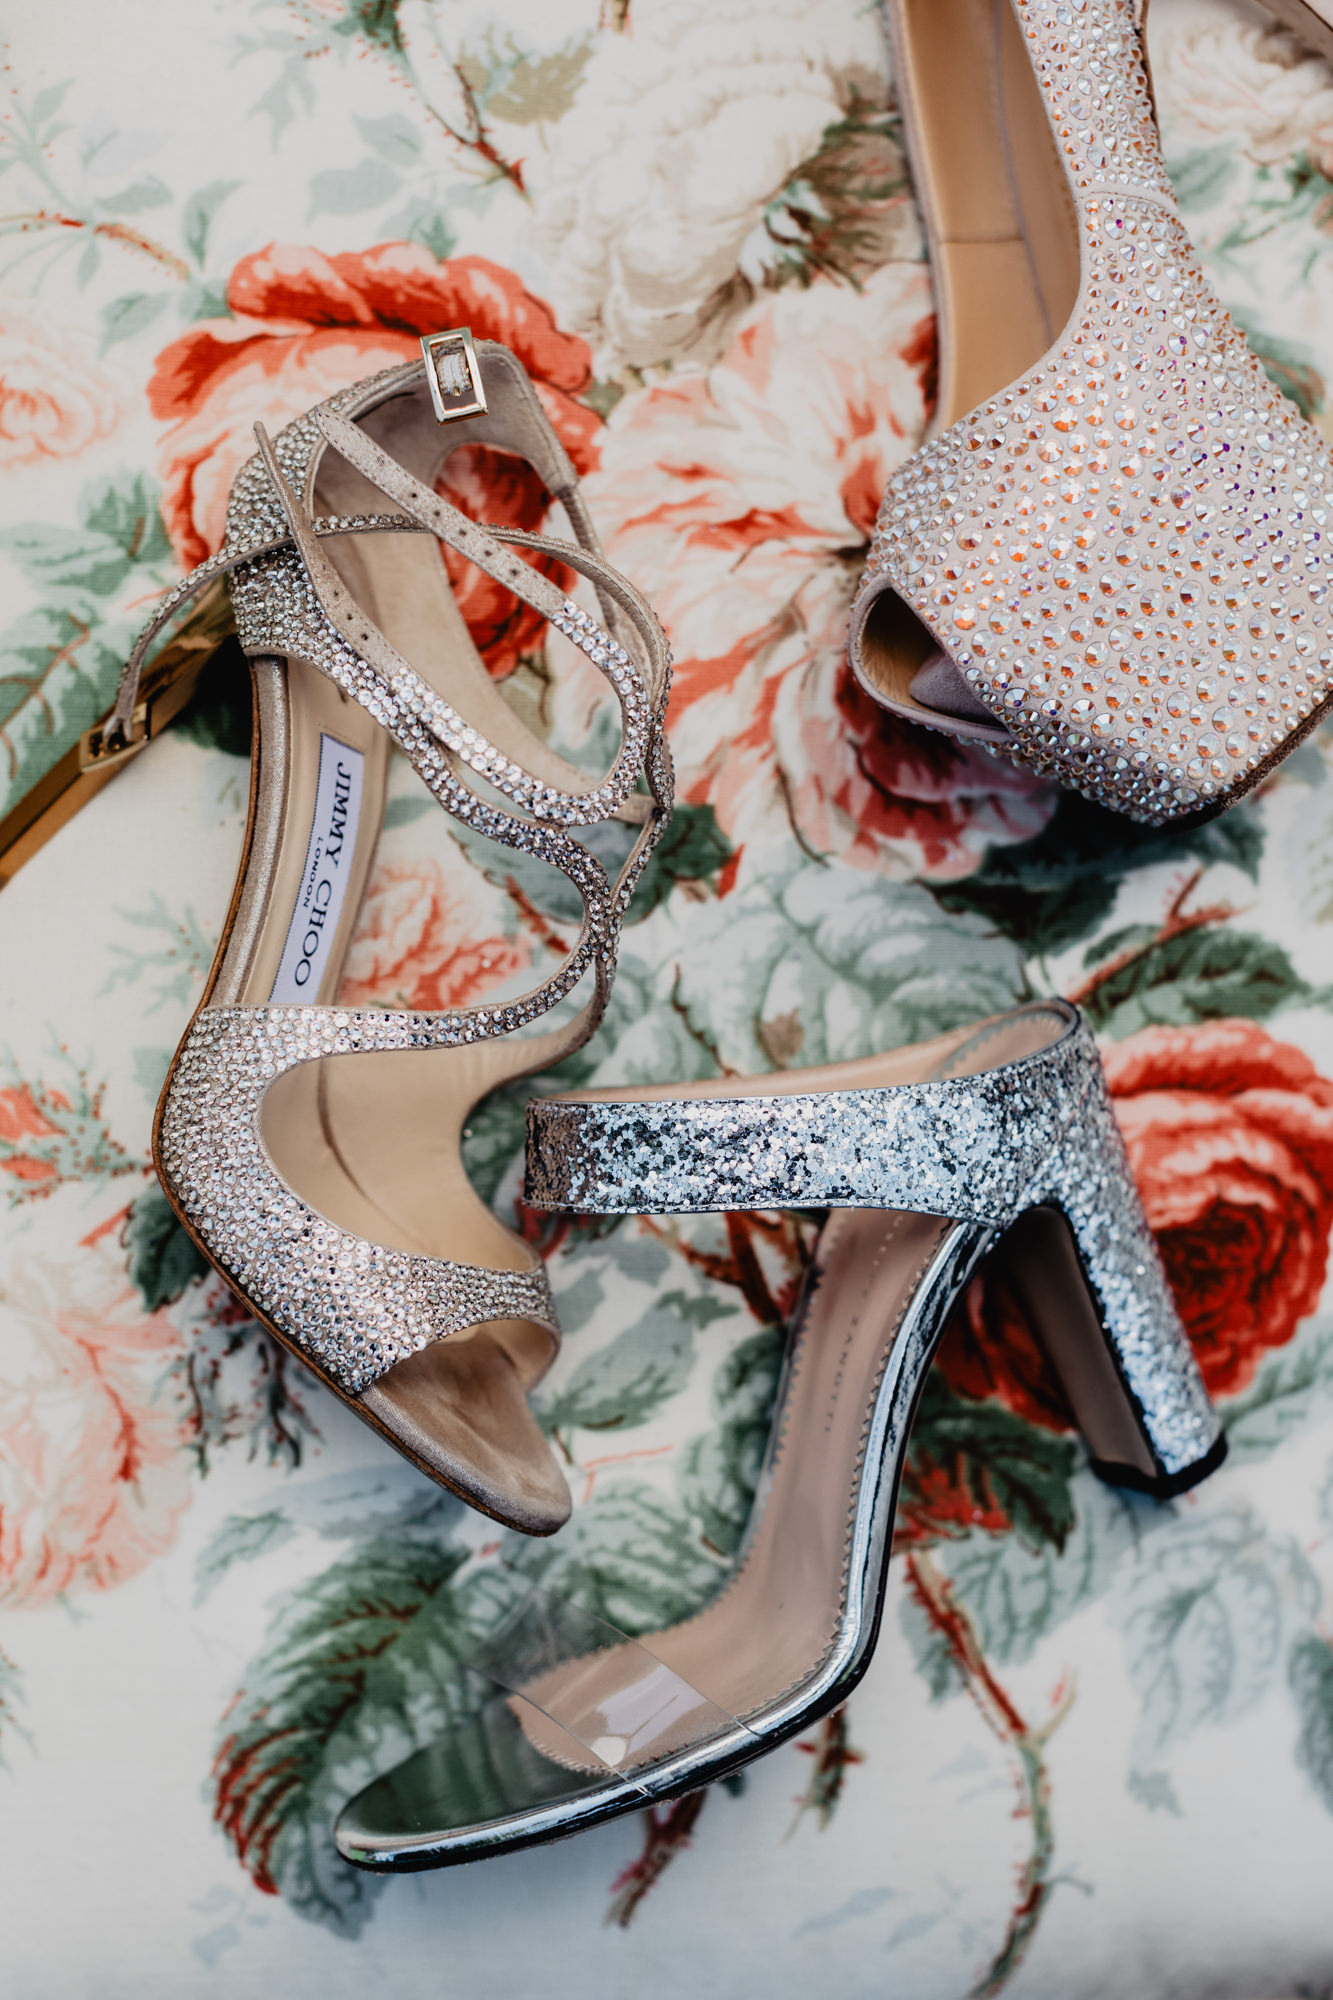 Jimmy Choo sparkel sandals party shoes photo by David Bastianoni